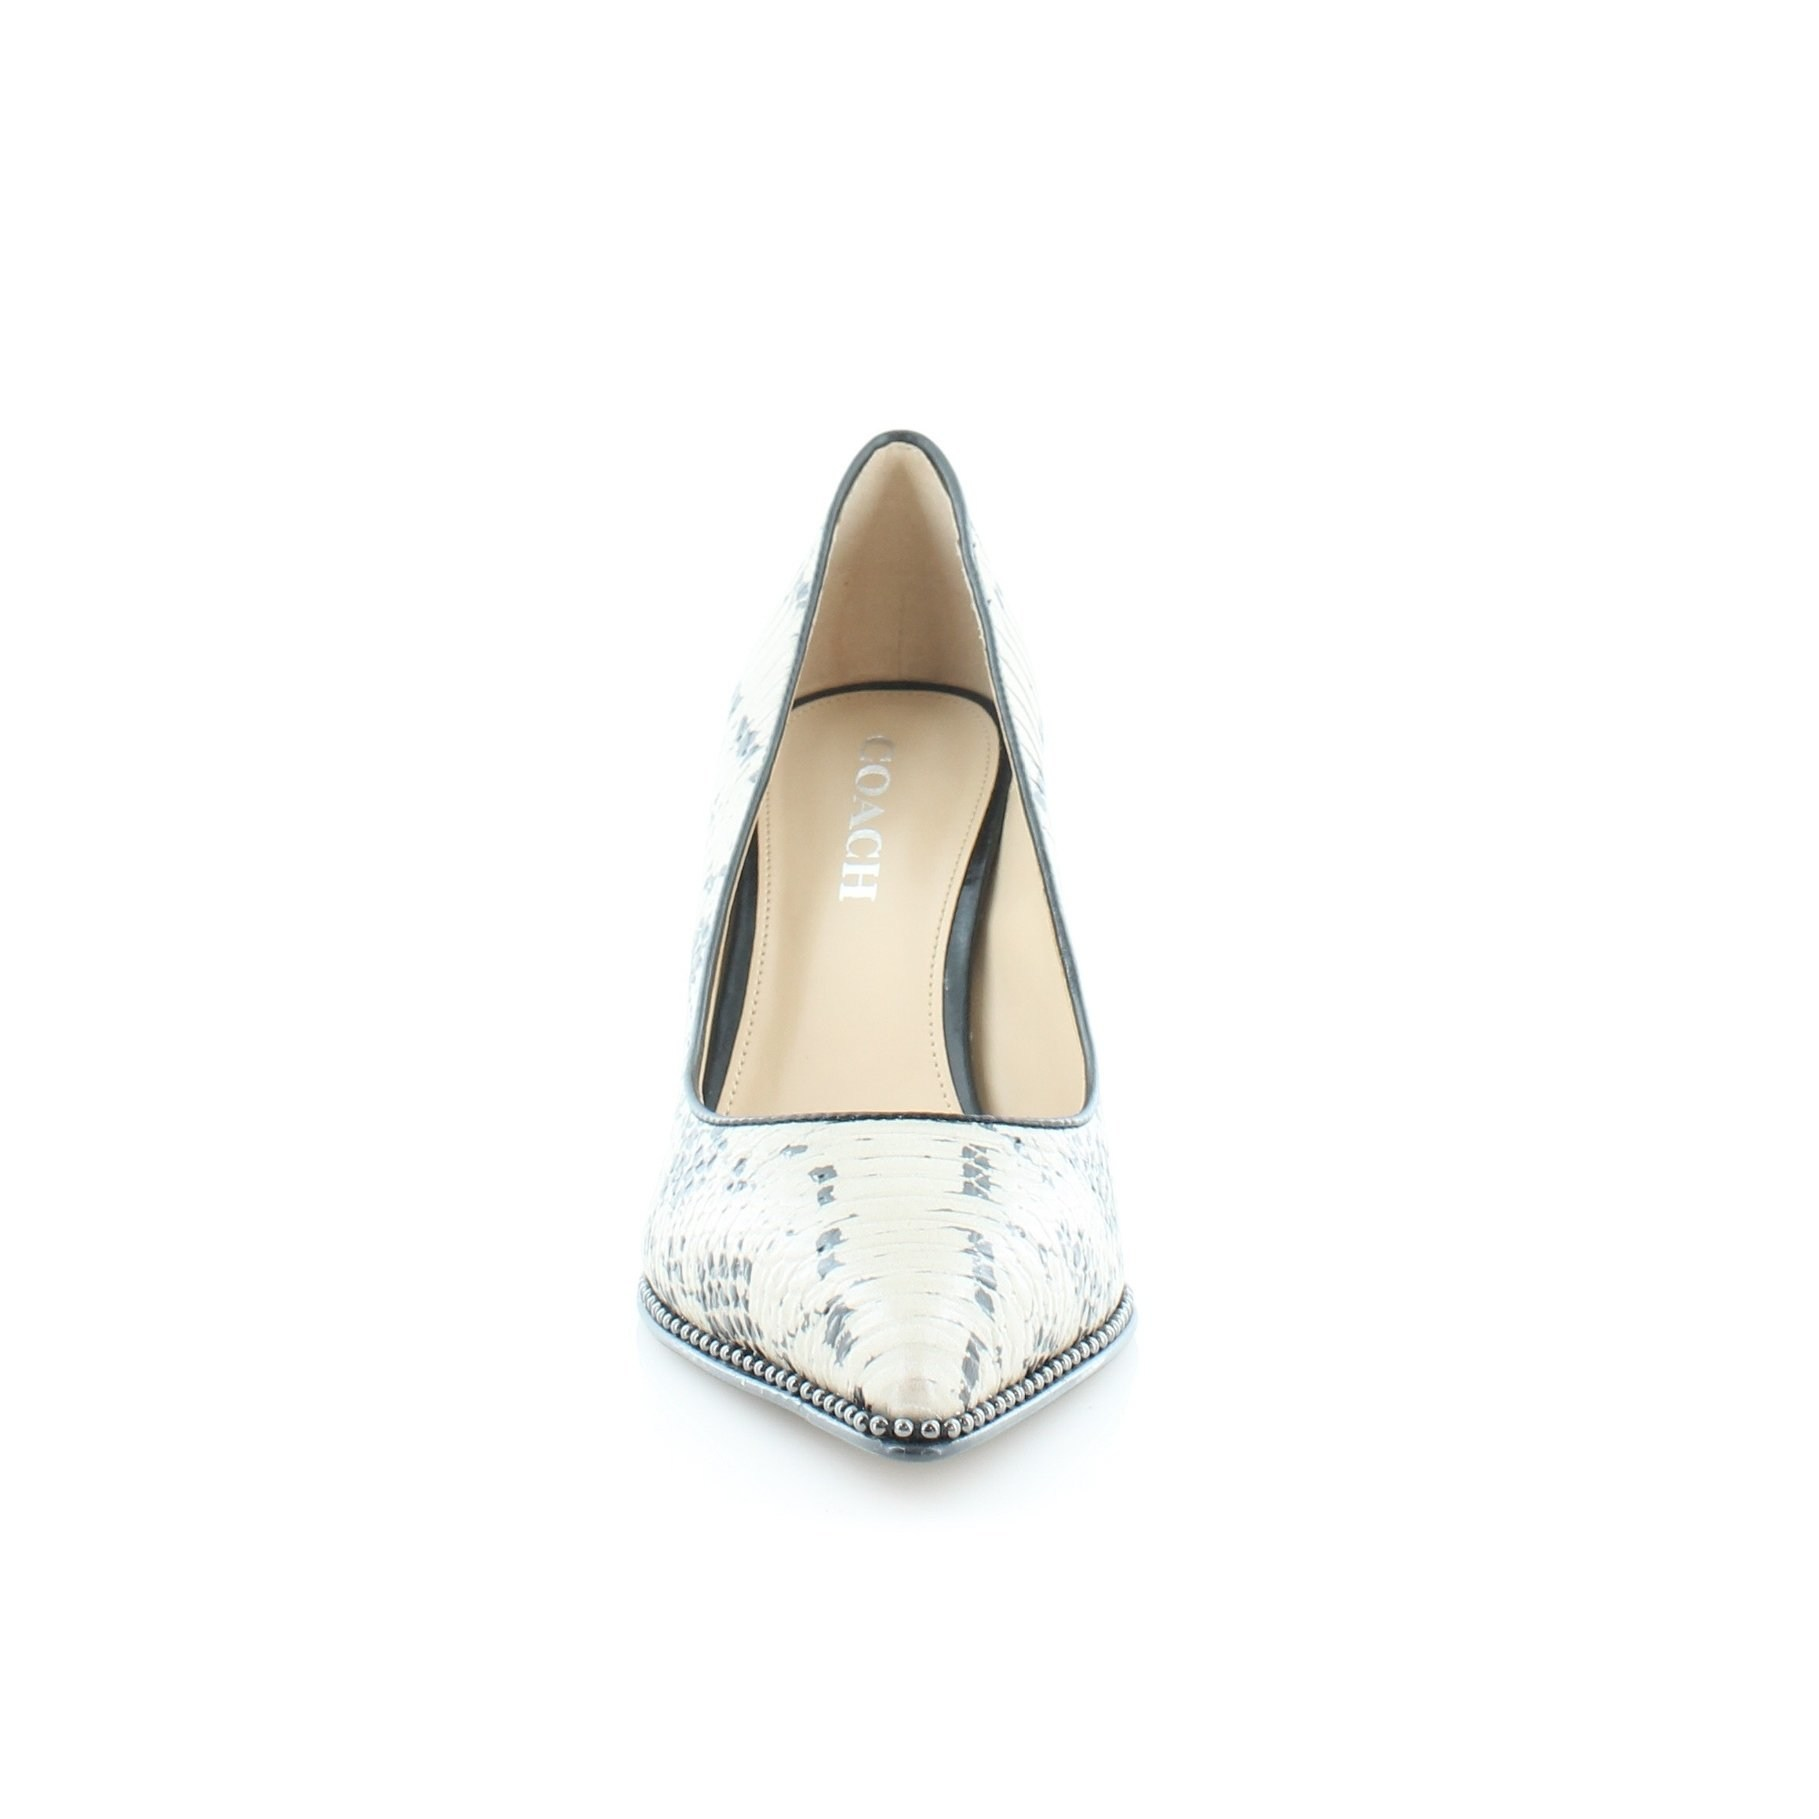 0cac9ce78bc2 Coach Womens Vonna Pointed Toe Classic Pumps